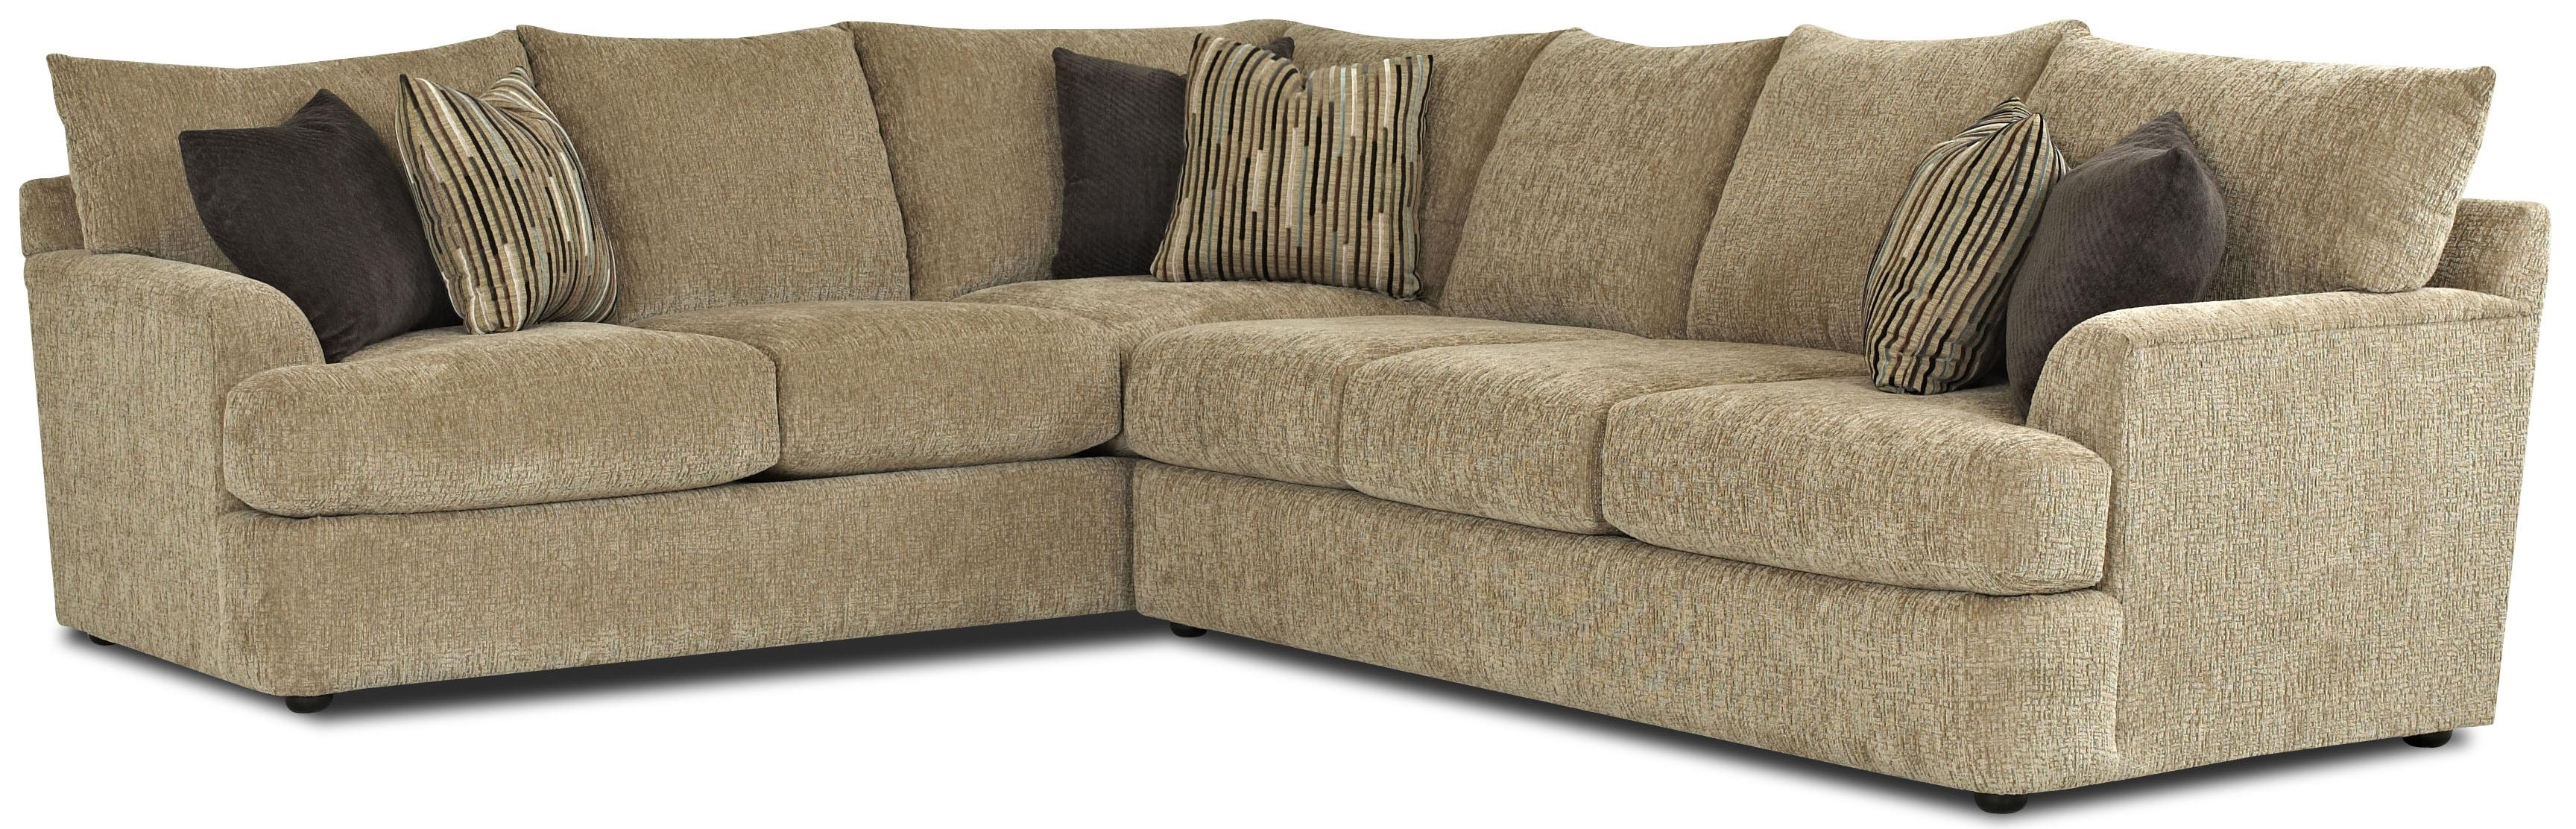 Contemporary L Shaped Sectional Sofaklaussner | Wolf And Throughout L Shaped Sectional Sofas (View 7 of 10)